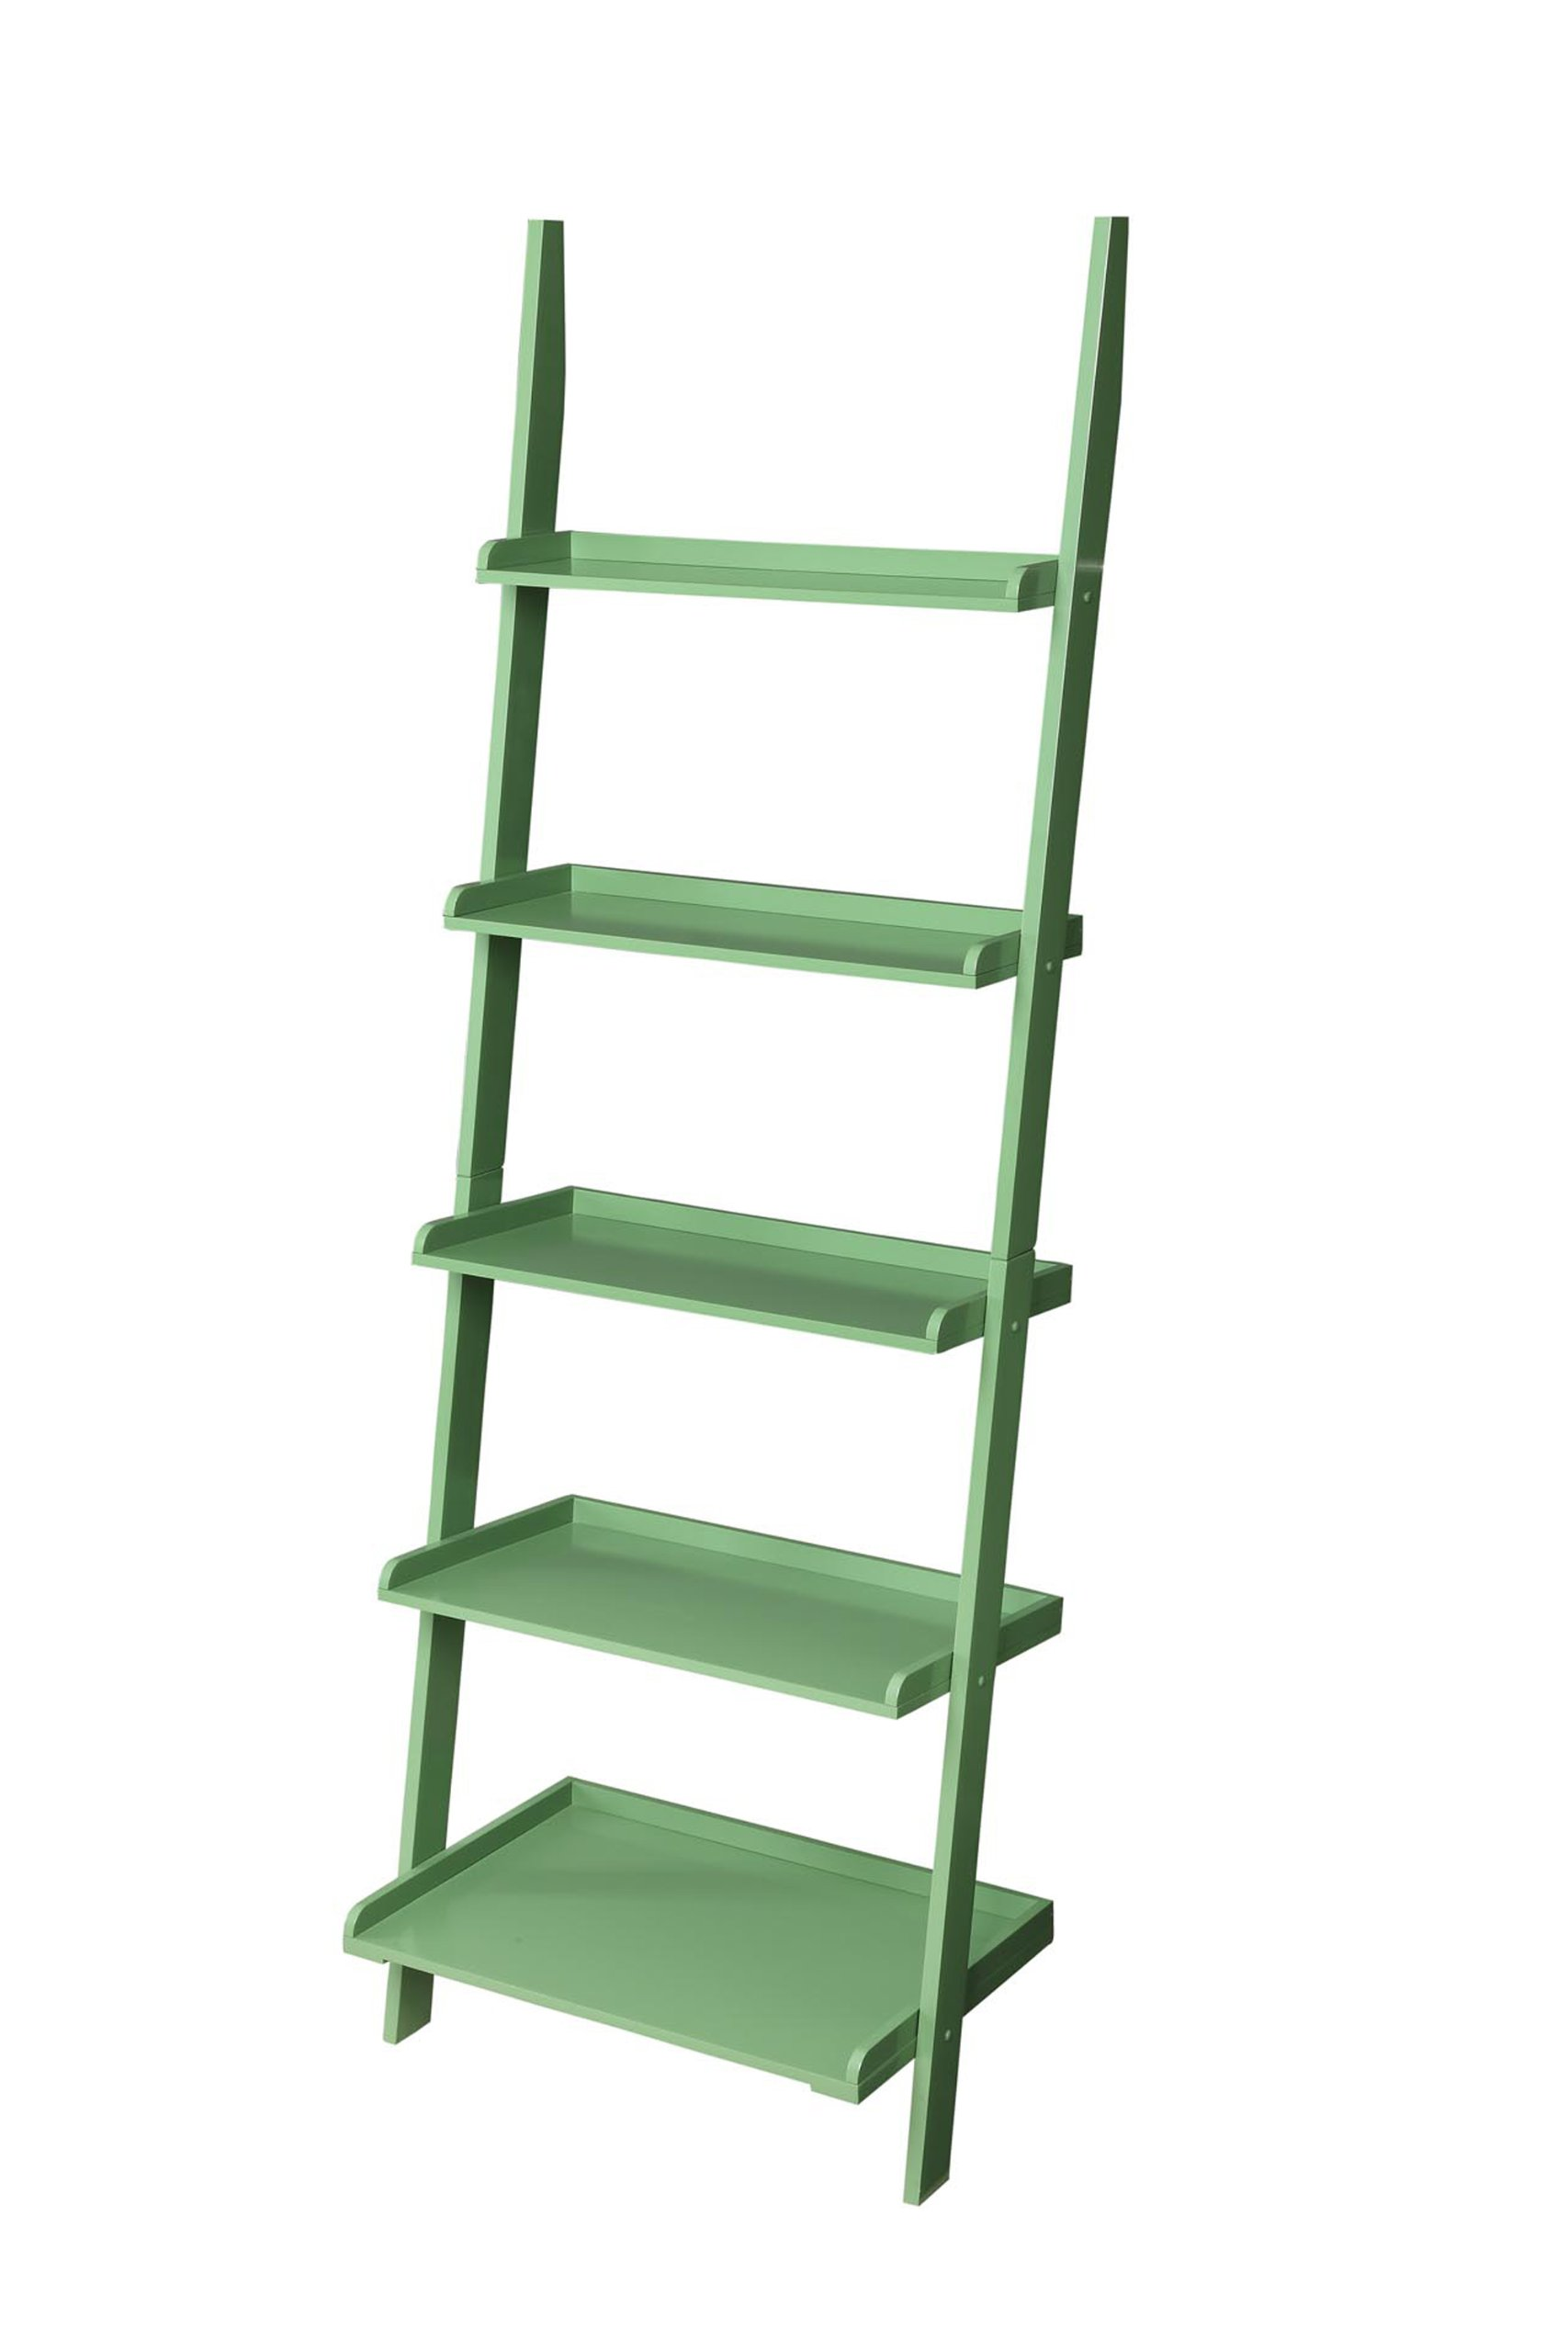 Convenience Concepts French Country Bookshelf Ladder, Green